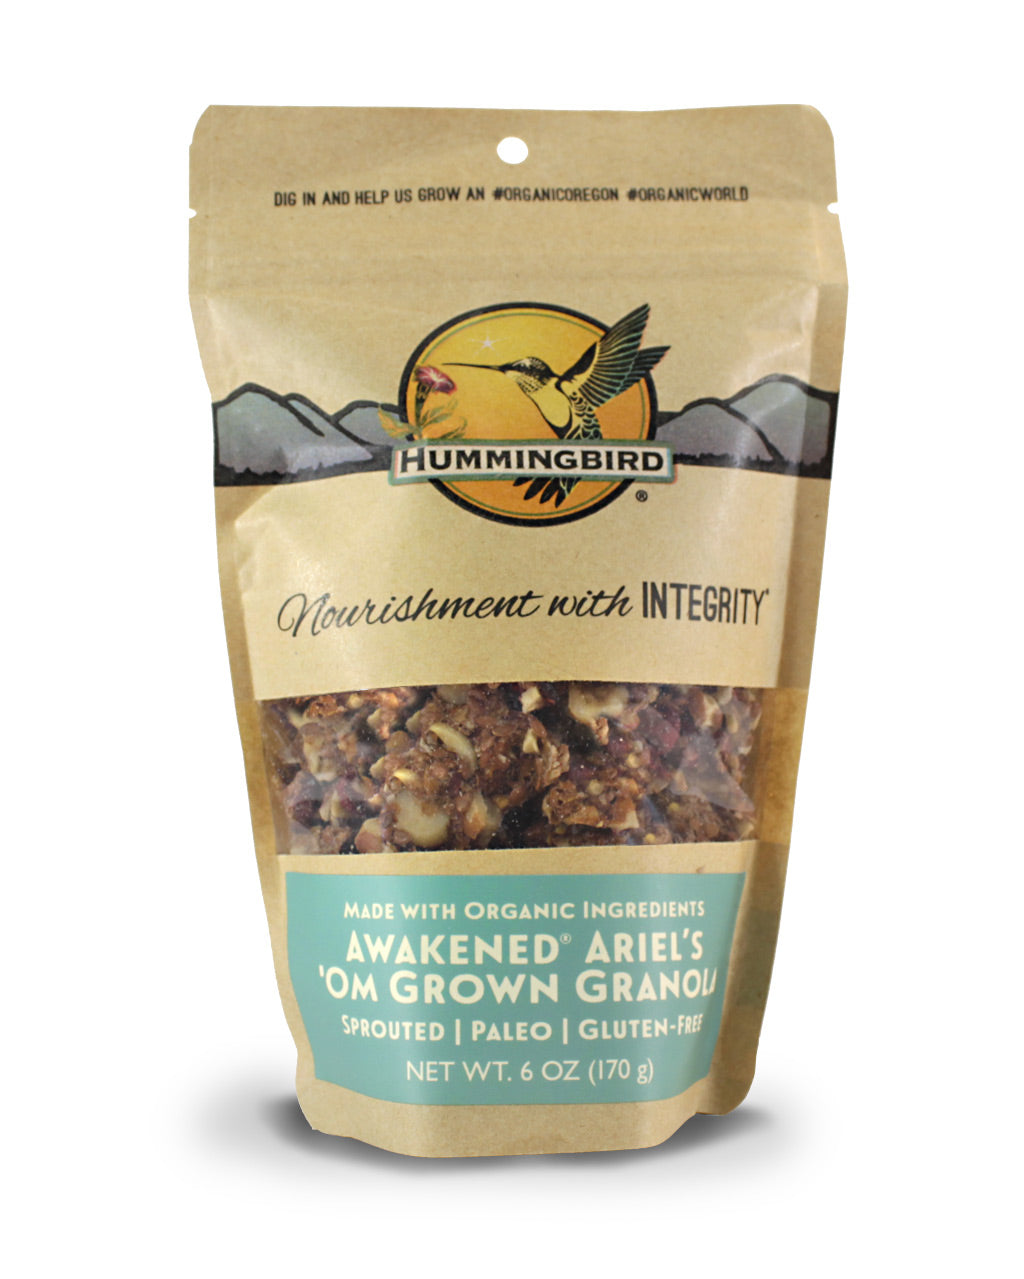 Awakened<sup>&reg;</sup> Ariel's 'Om Grown Granola